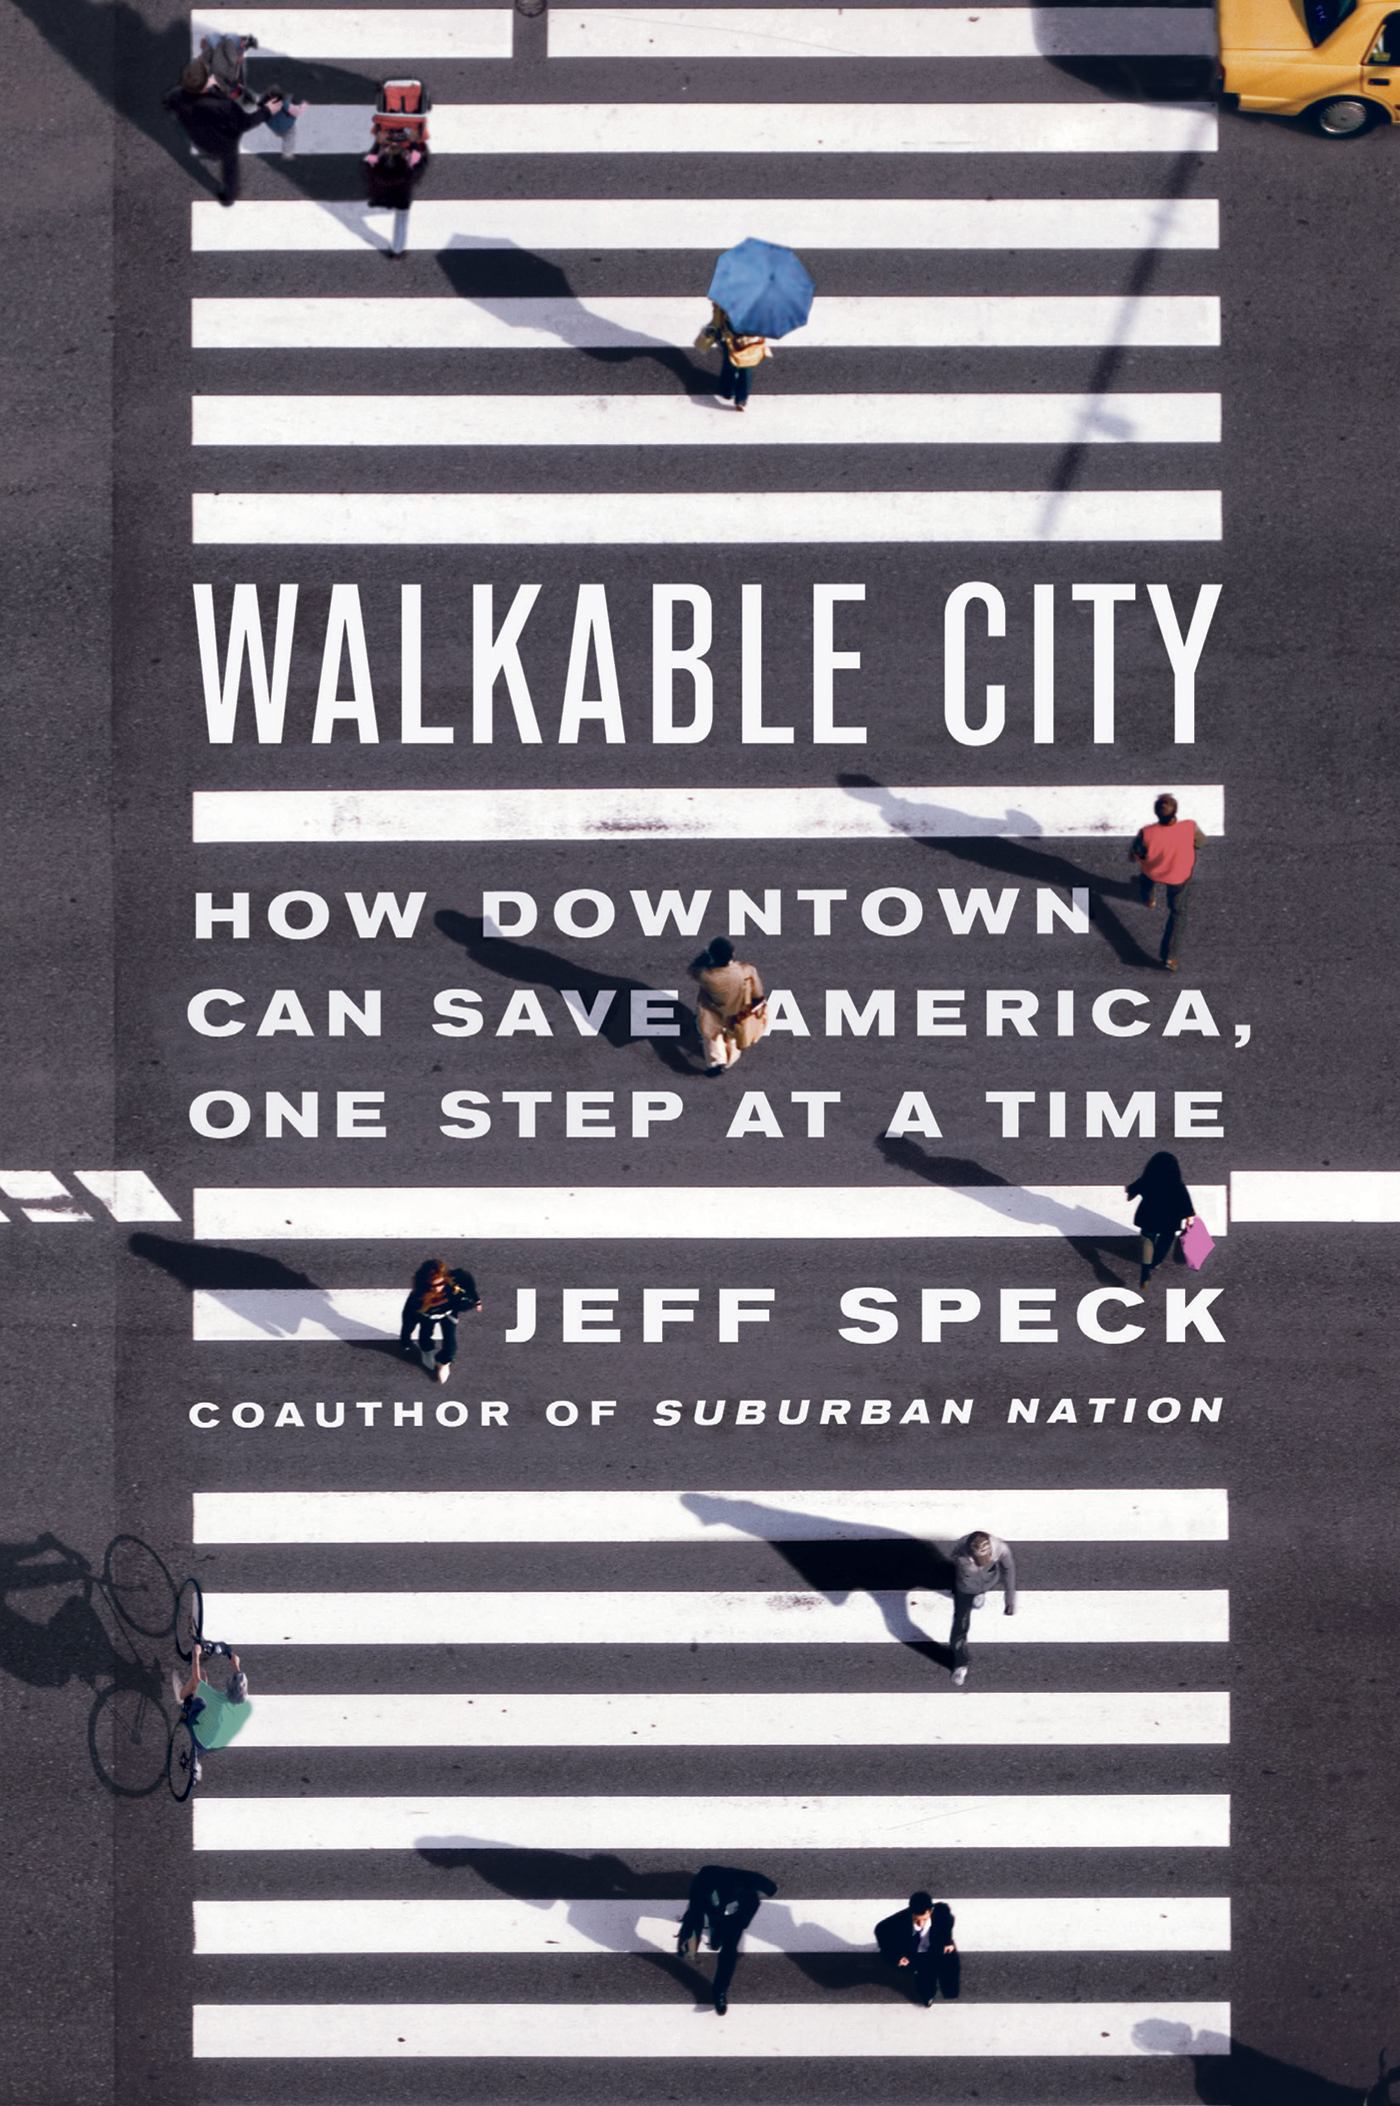 Walkable City Speck